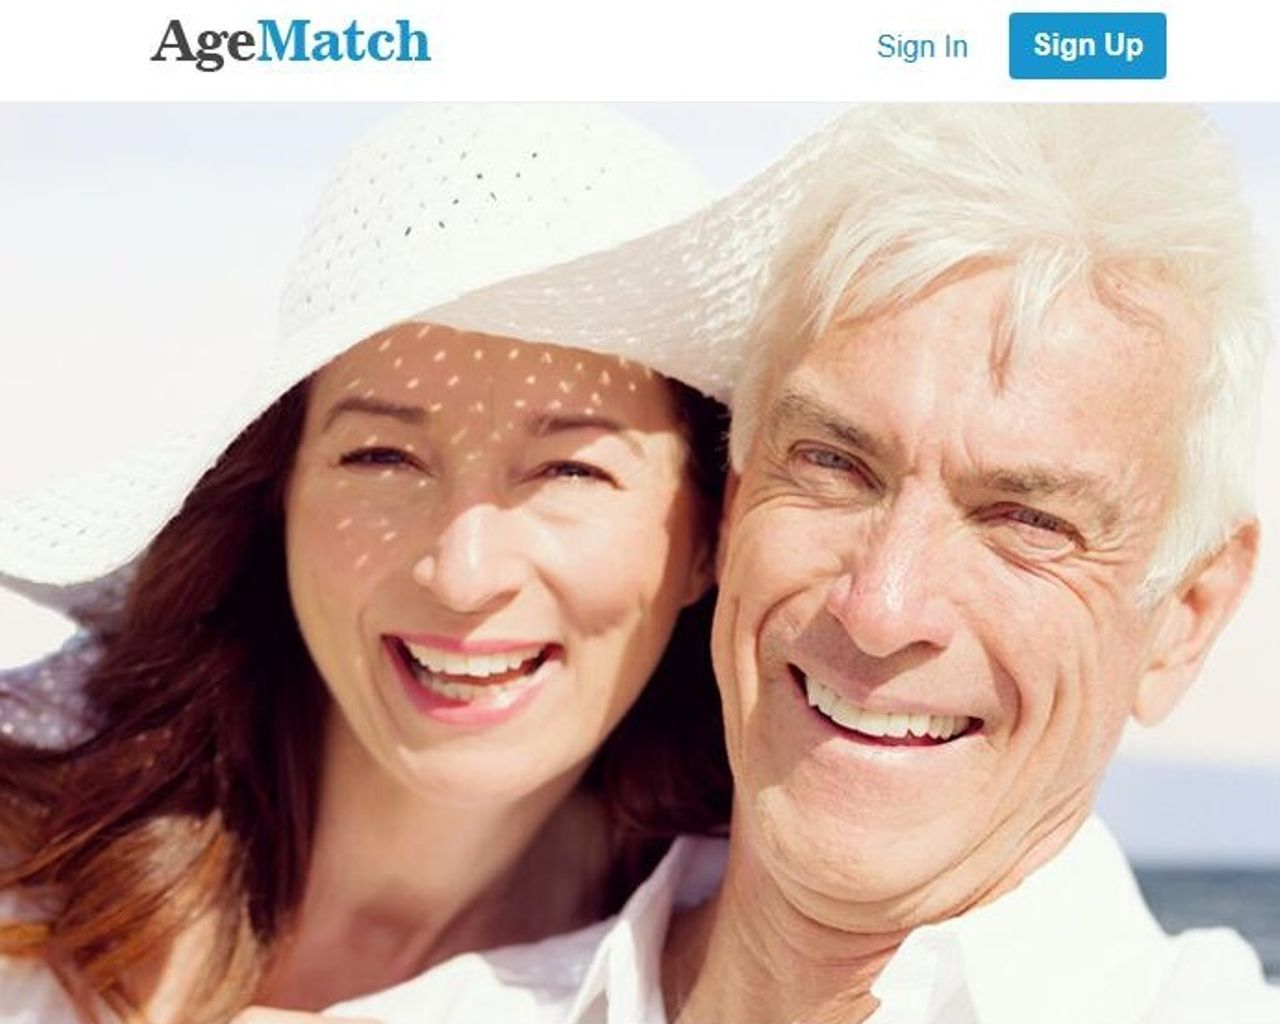 Agematch review